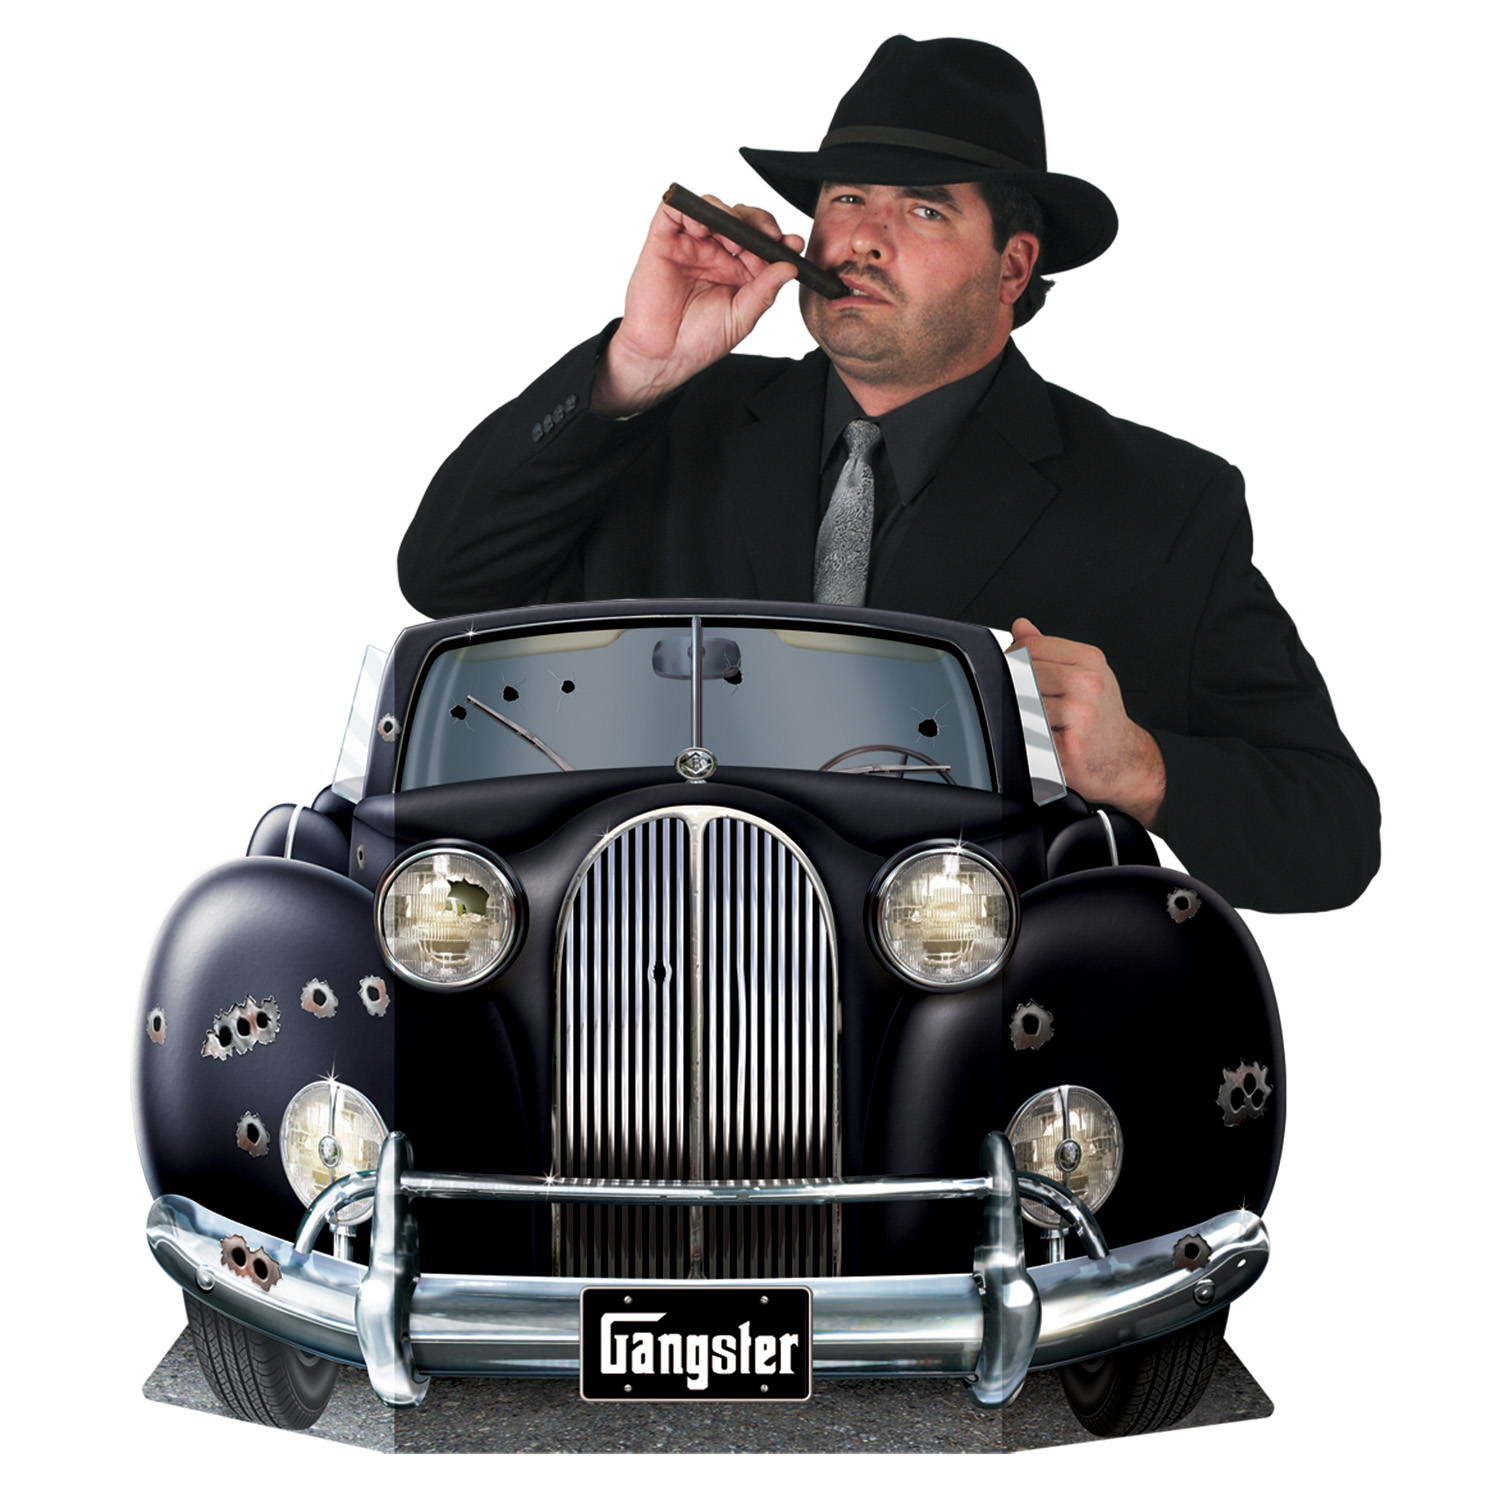 Gangster 3ft Photo Prop